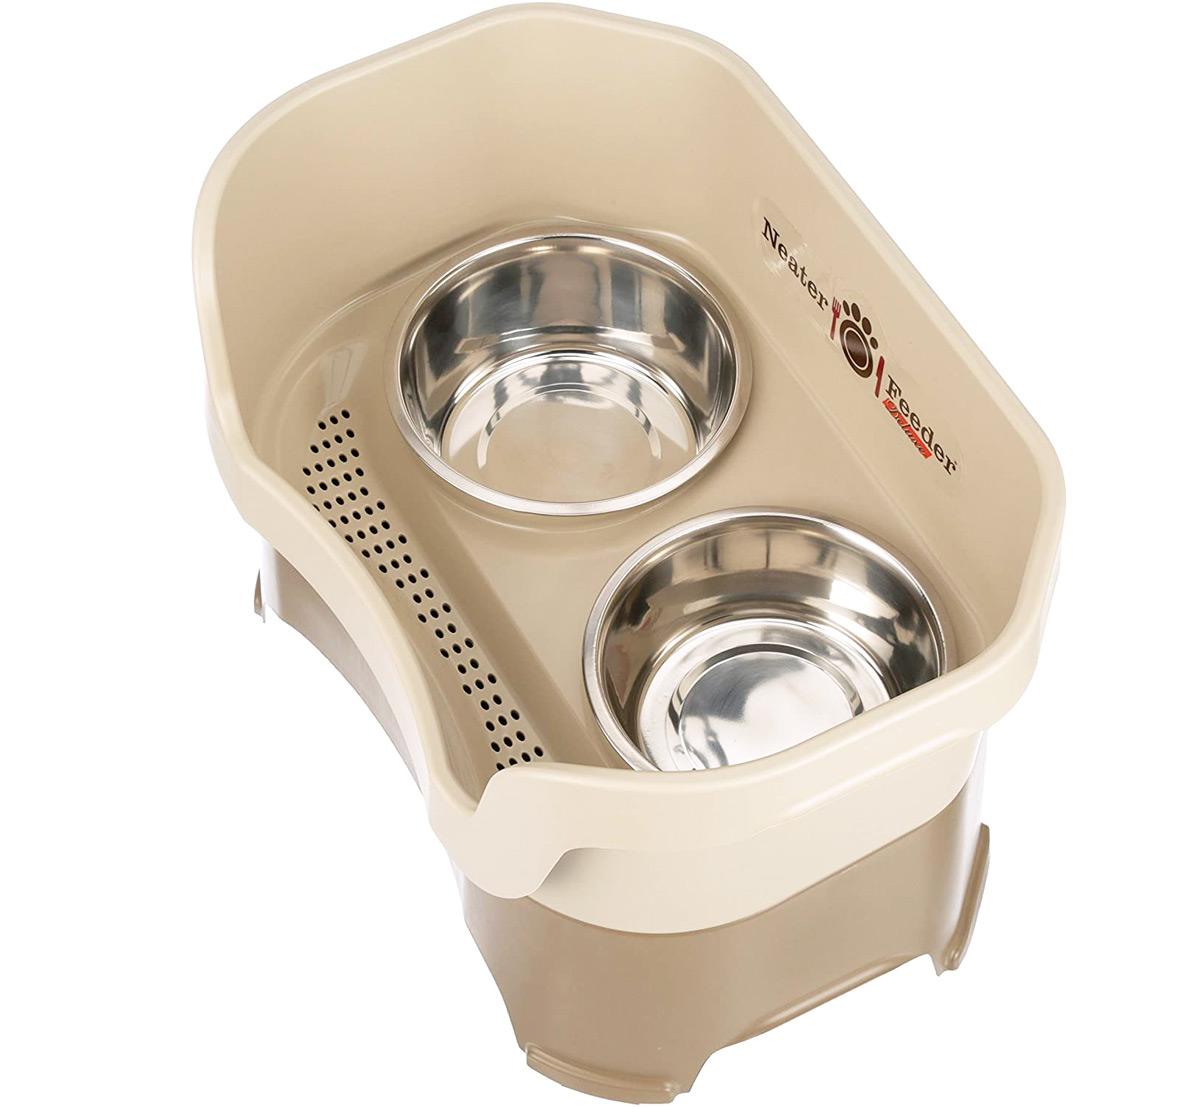 top view of elevated dog bowls with side walls and drain for spilled water